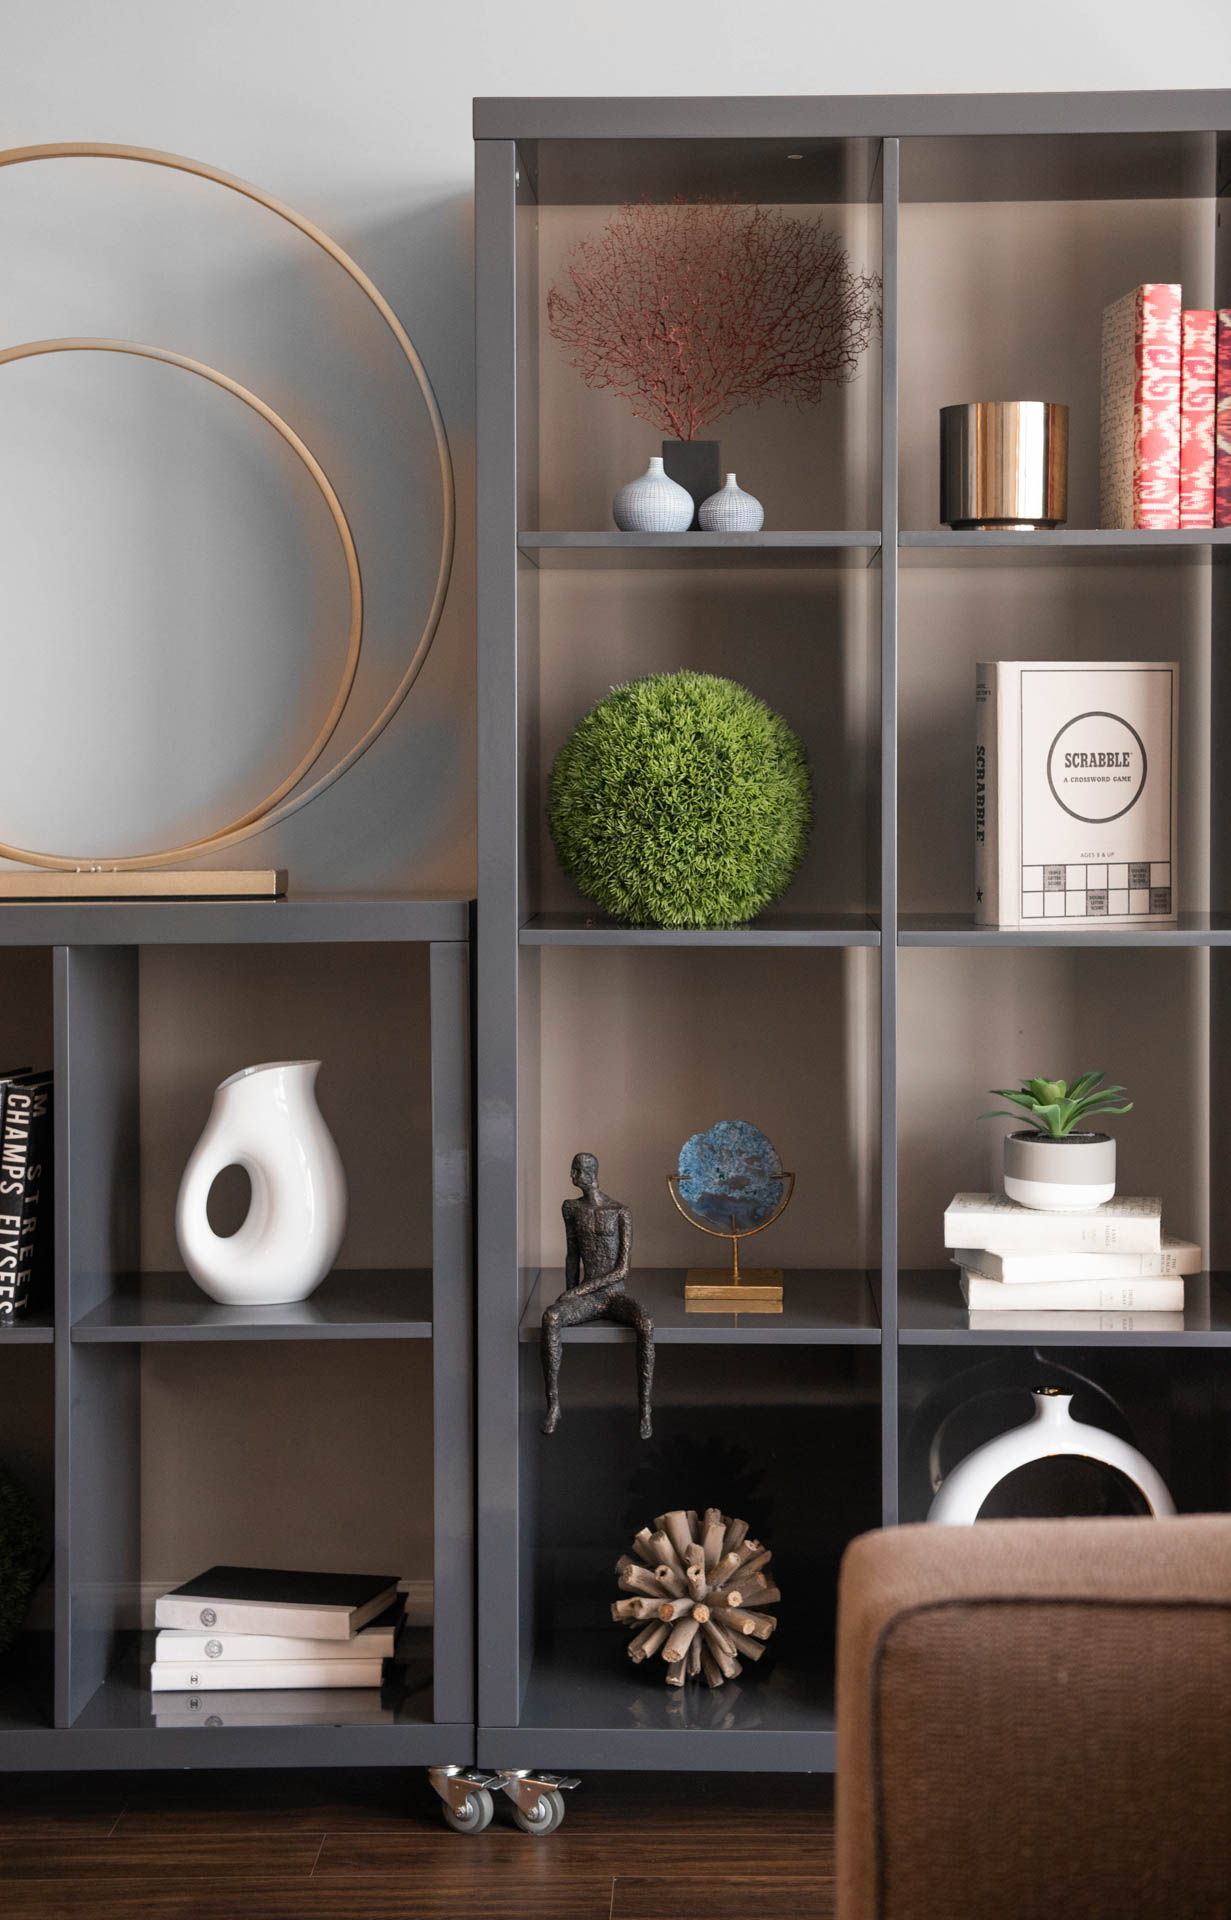 Close in detail of charcoal gray bookcase styled with various books, plants, and art pieces with gold and blue accents